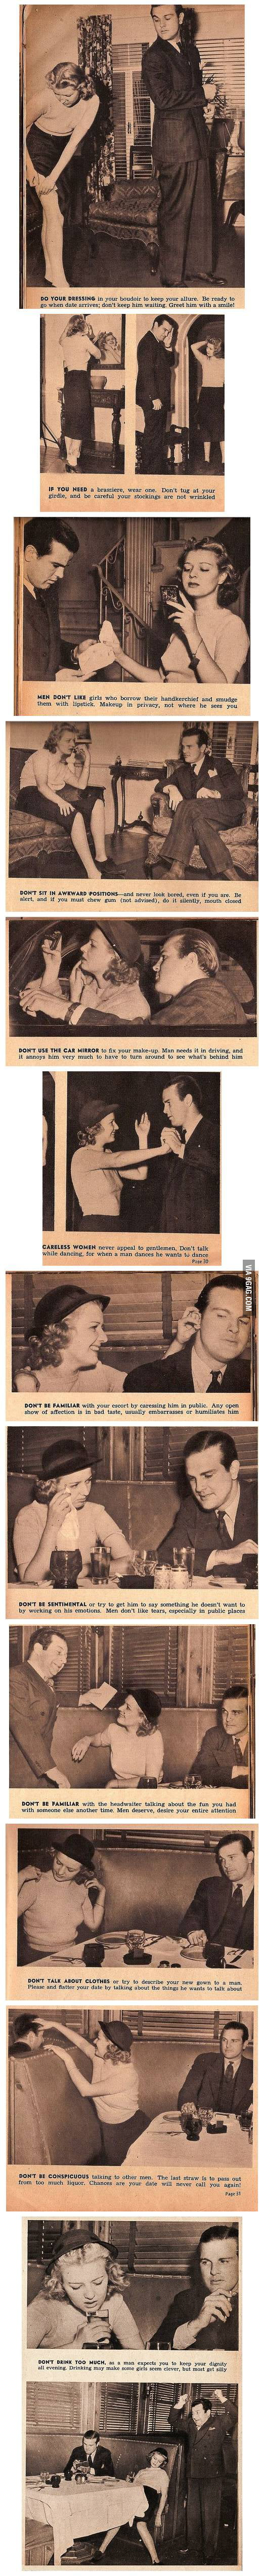 Dating Advice for Women circa 1950